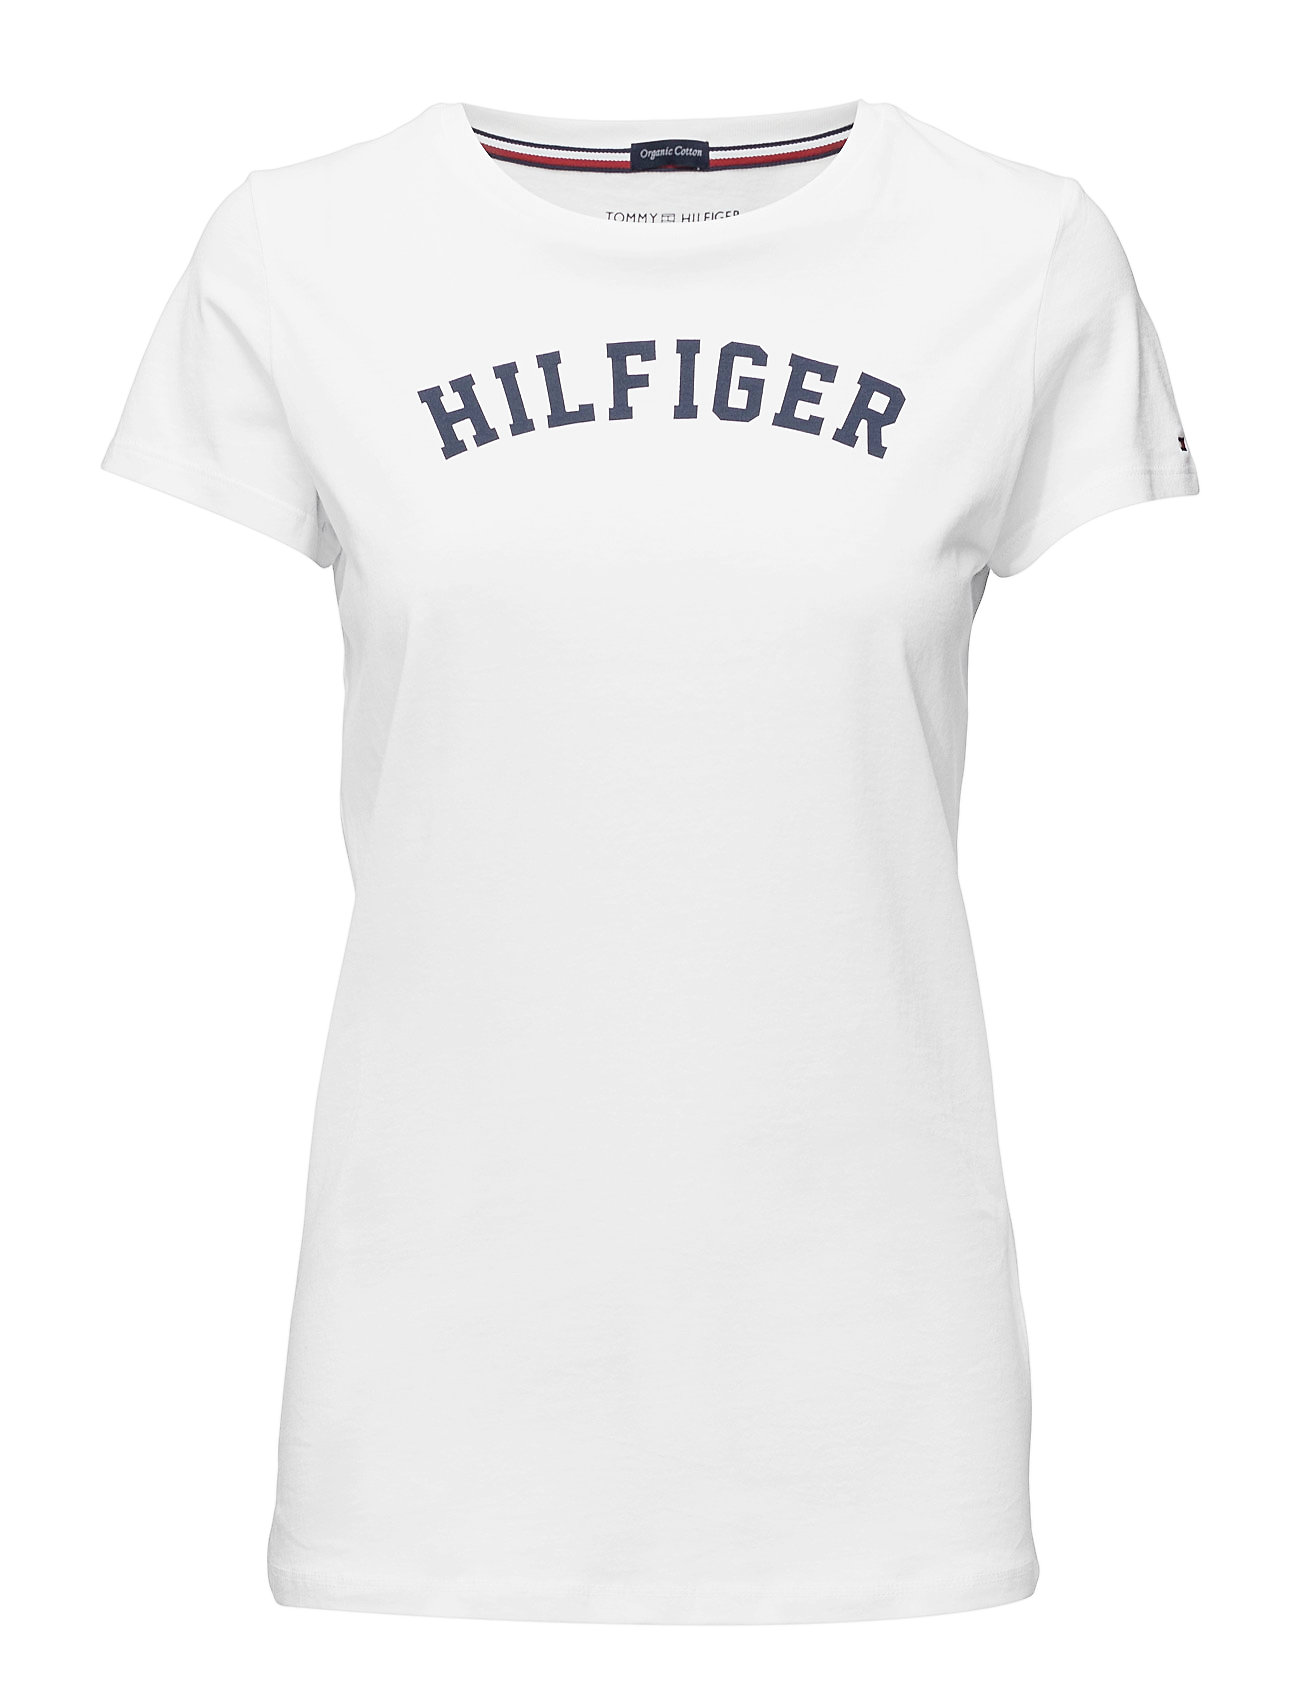 Tommy Hilfiger SS TEE PRINT - WHITE